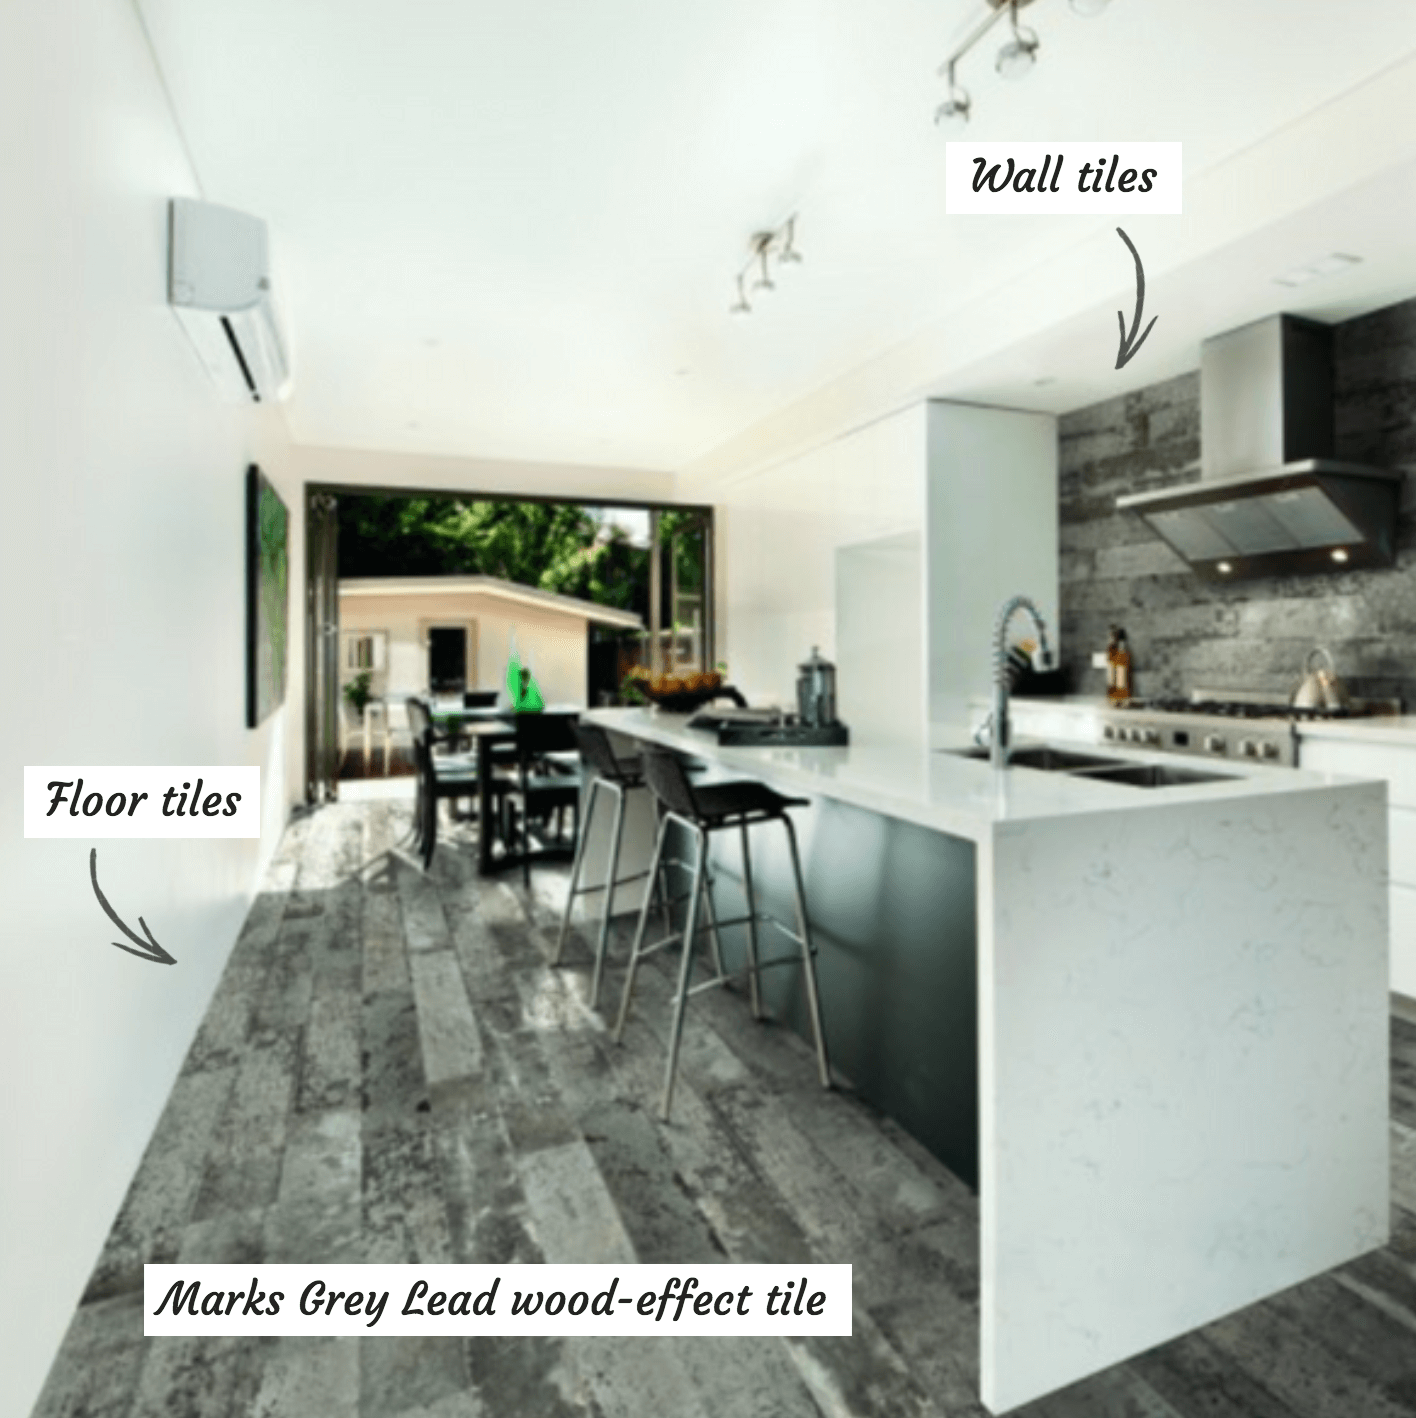 Marks Grey Lead wood-effect tiles